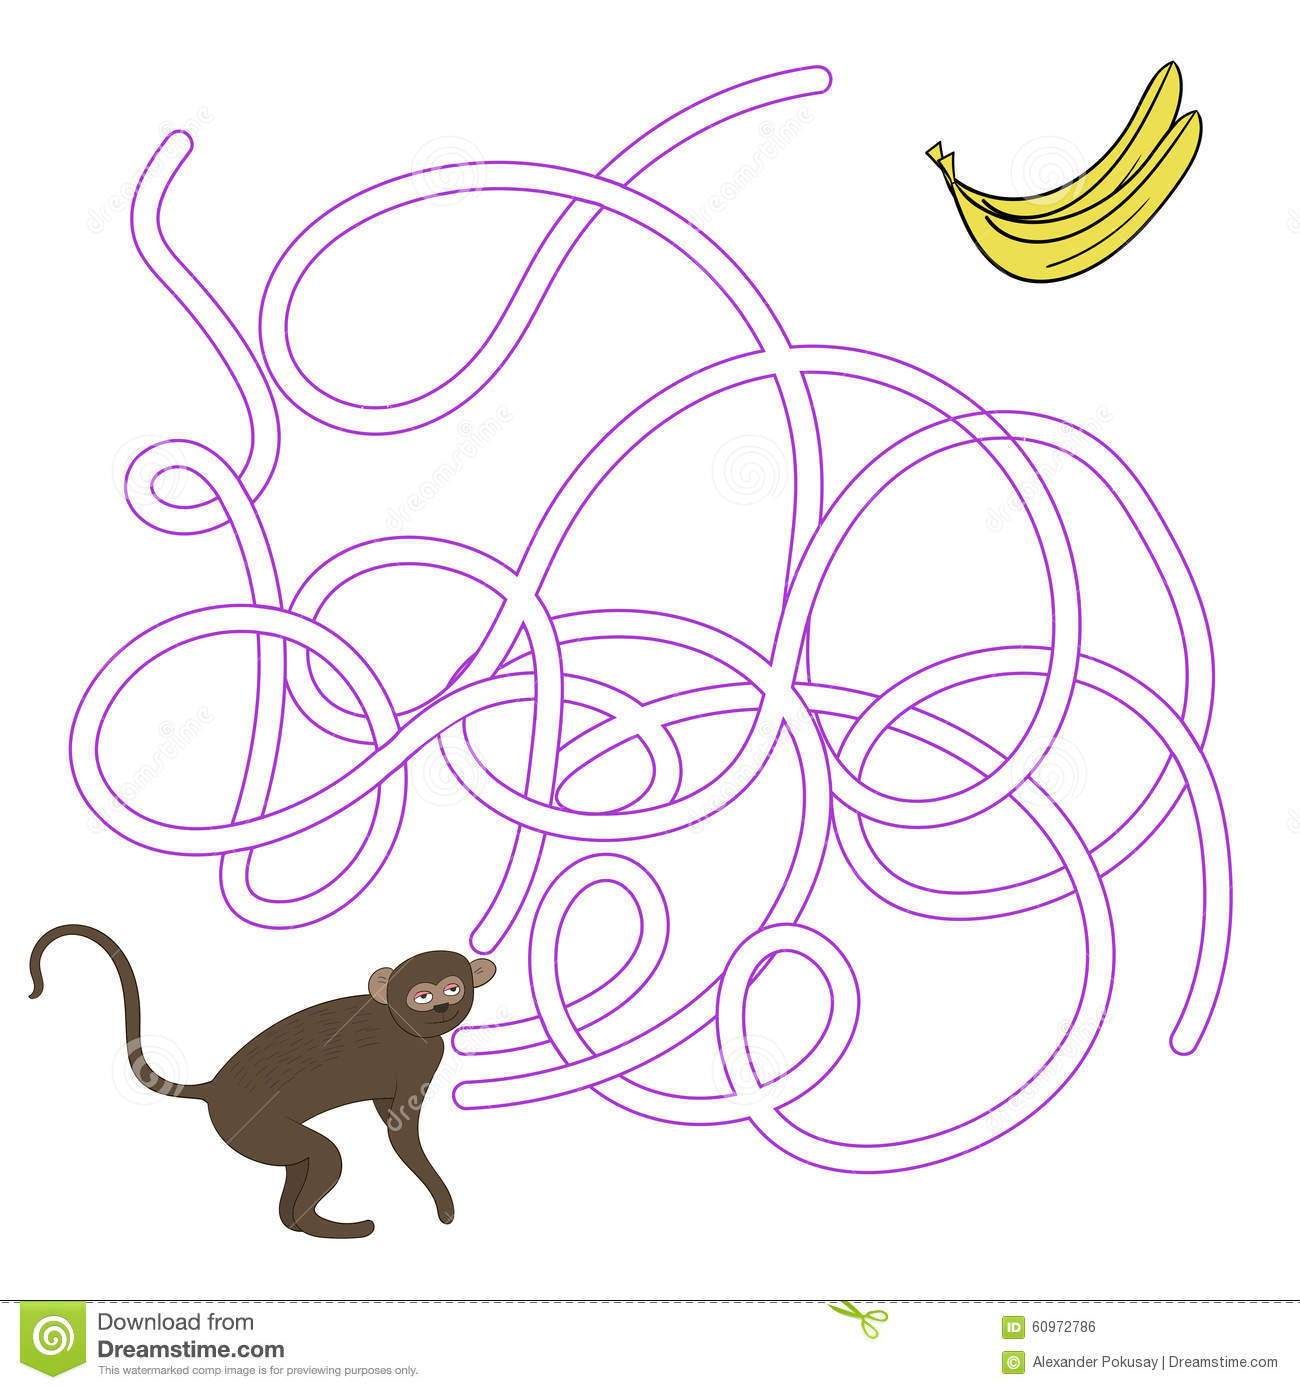 Download Game Labyrinth Find A Way Vervet Ape Vector Stock Vector - Illustration of search, elements: 60972786